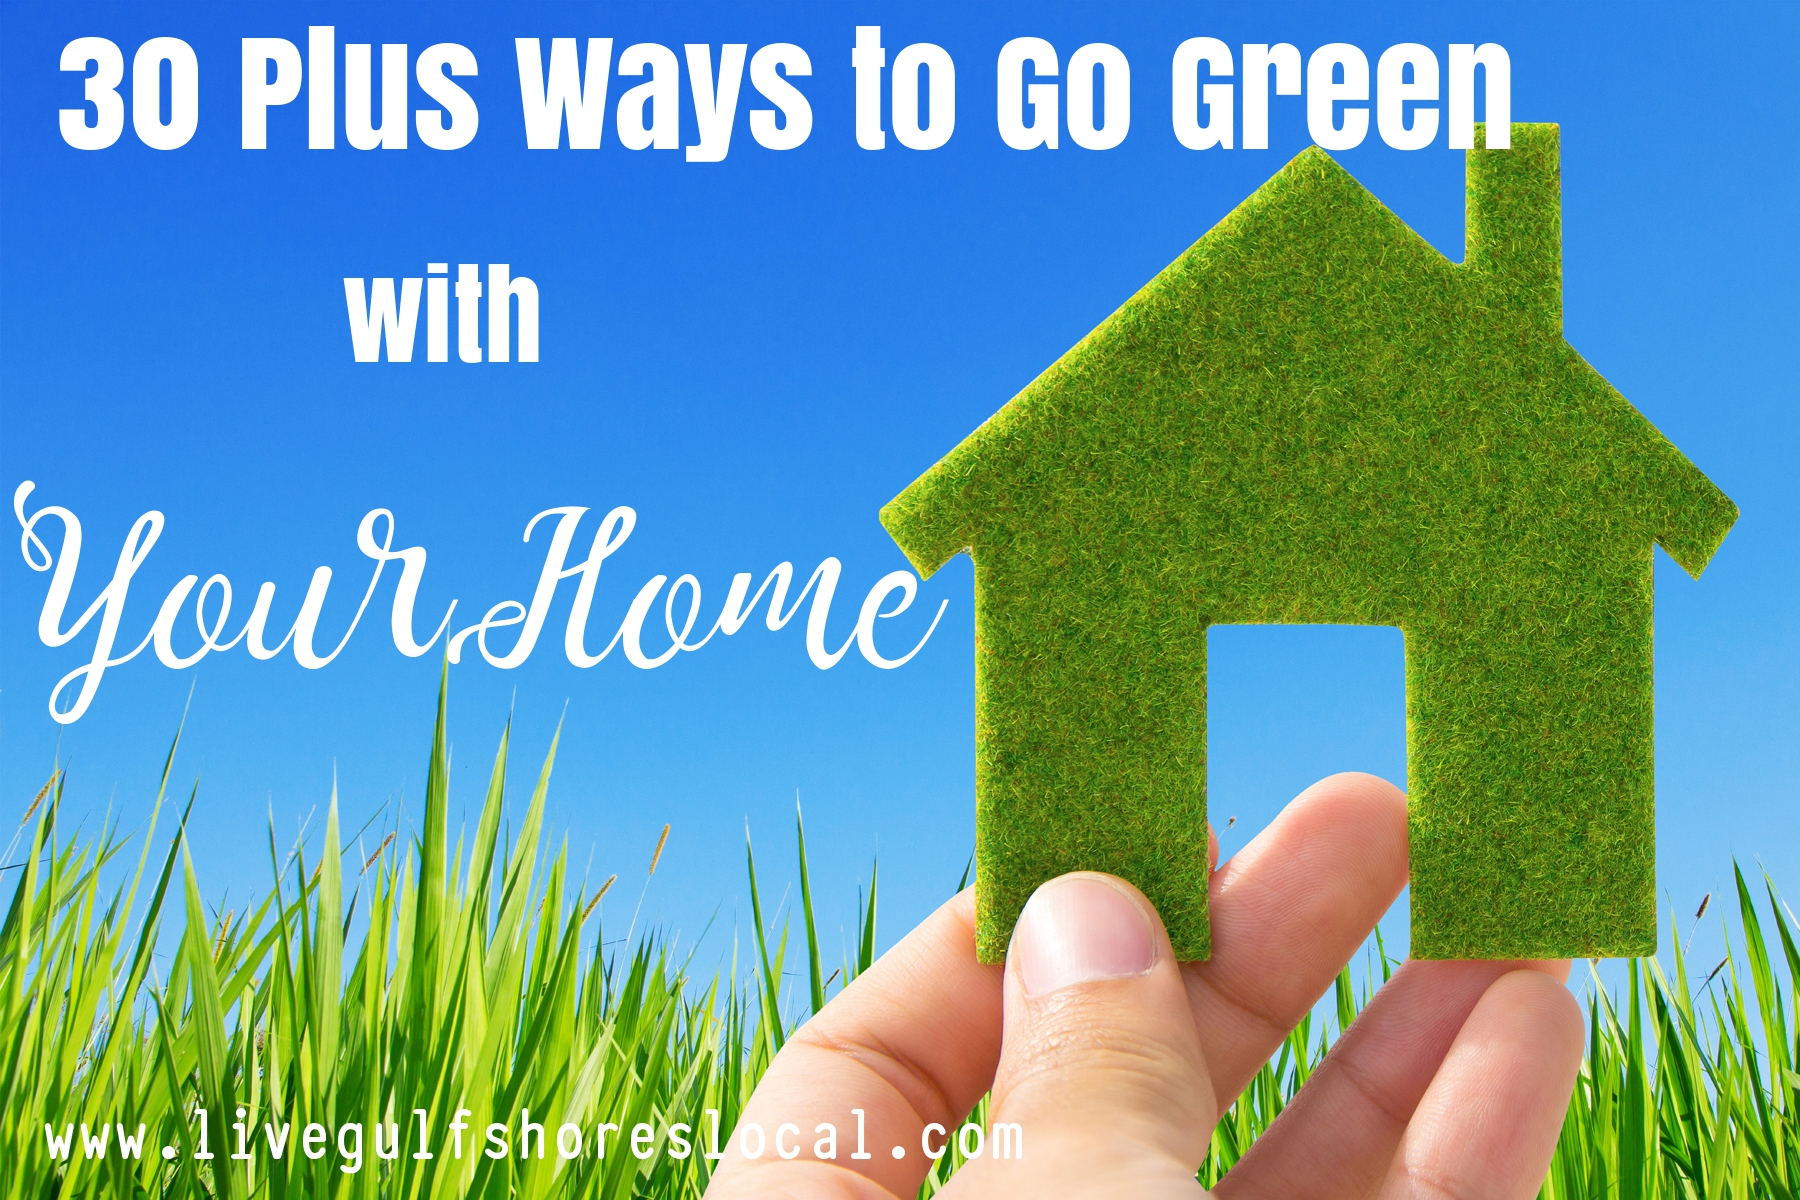 30 Ways to Go Green with Your Home